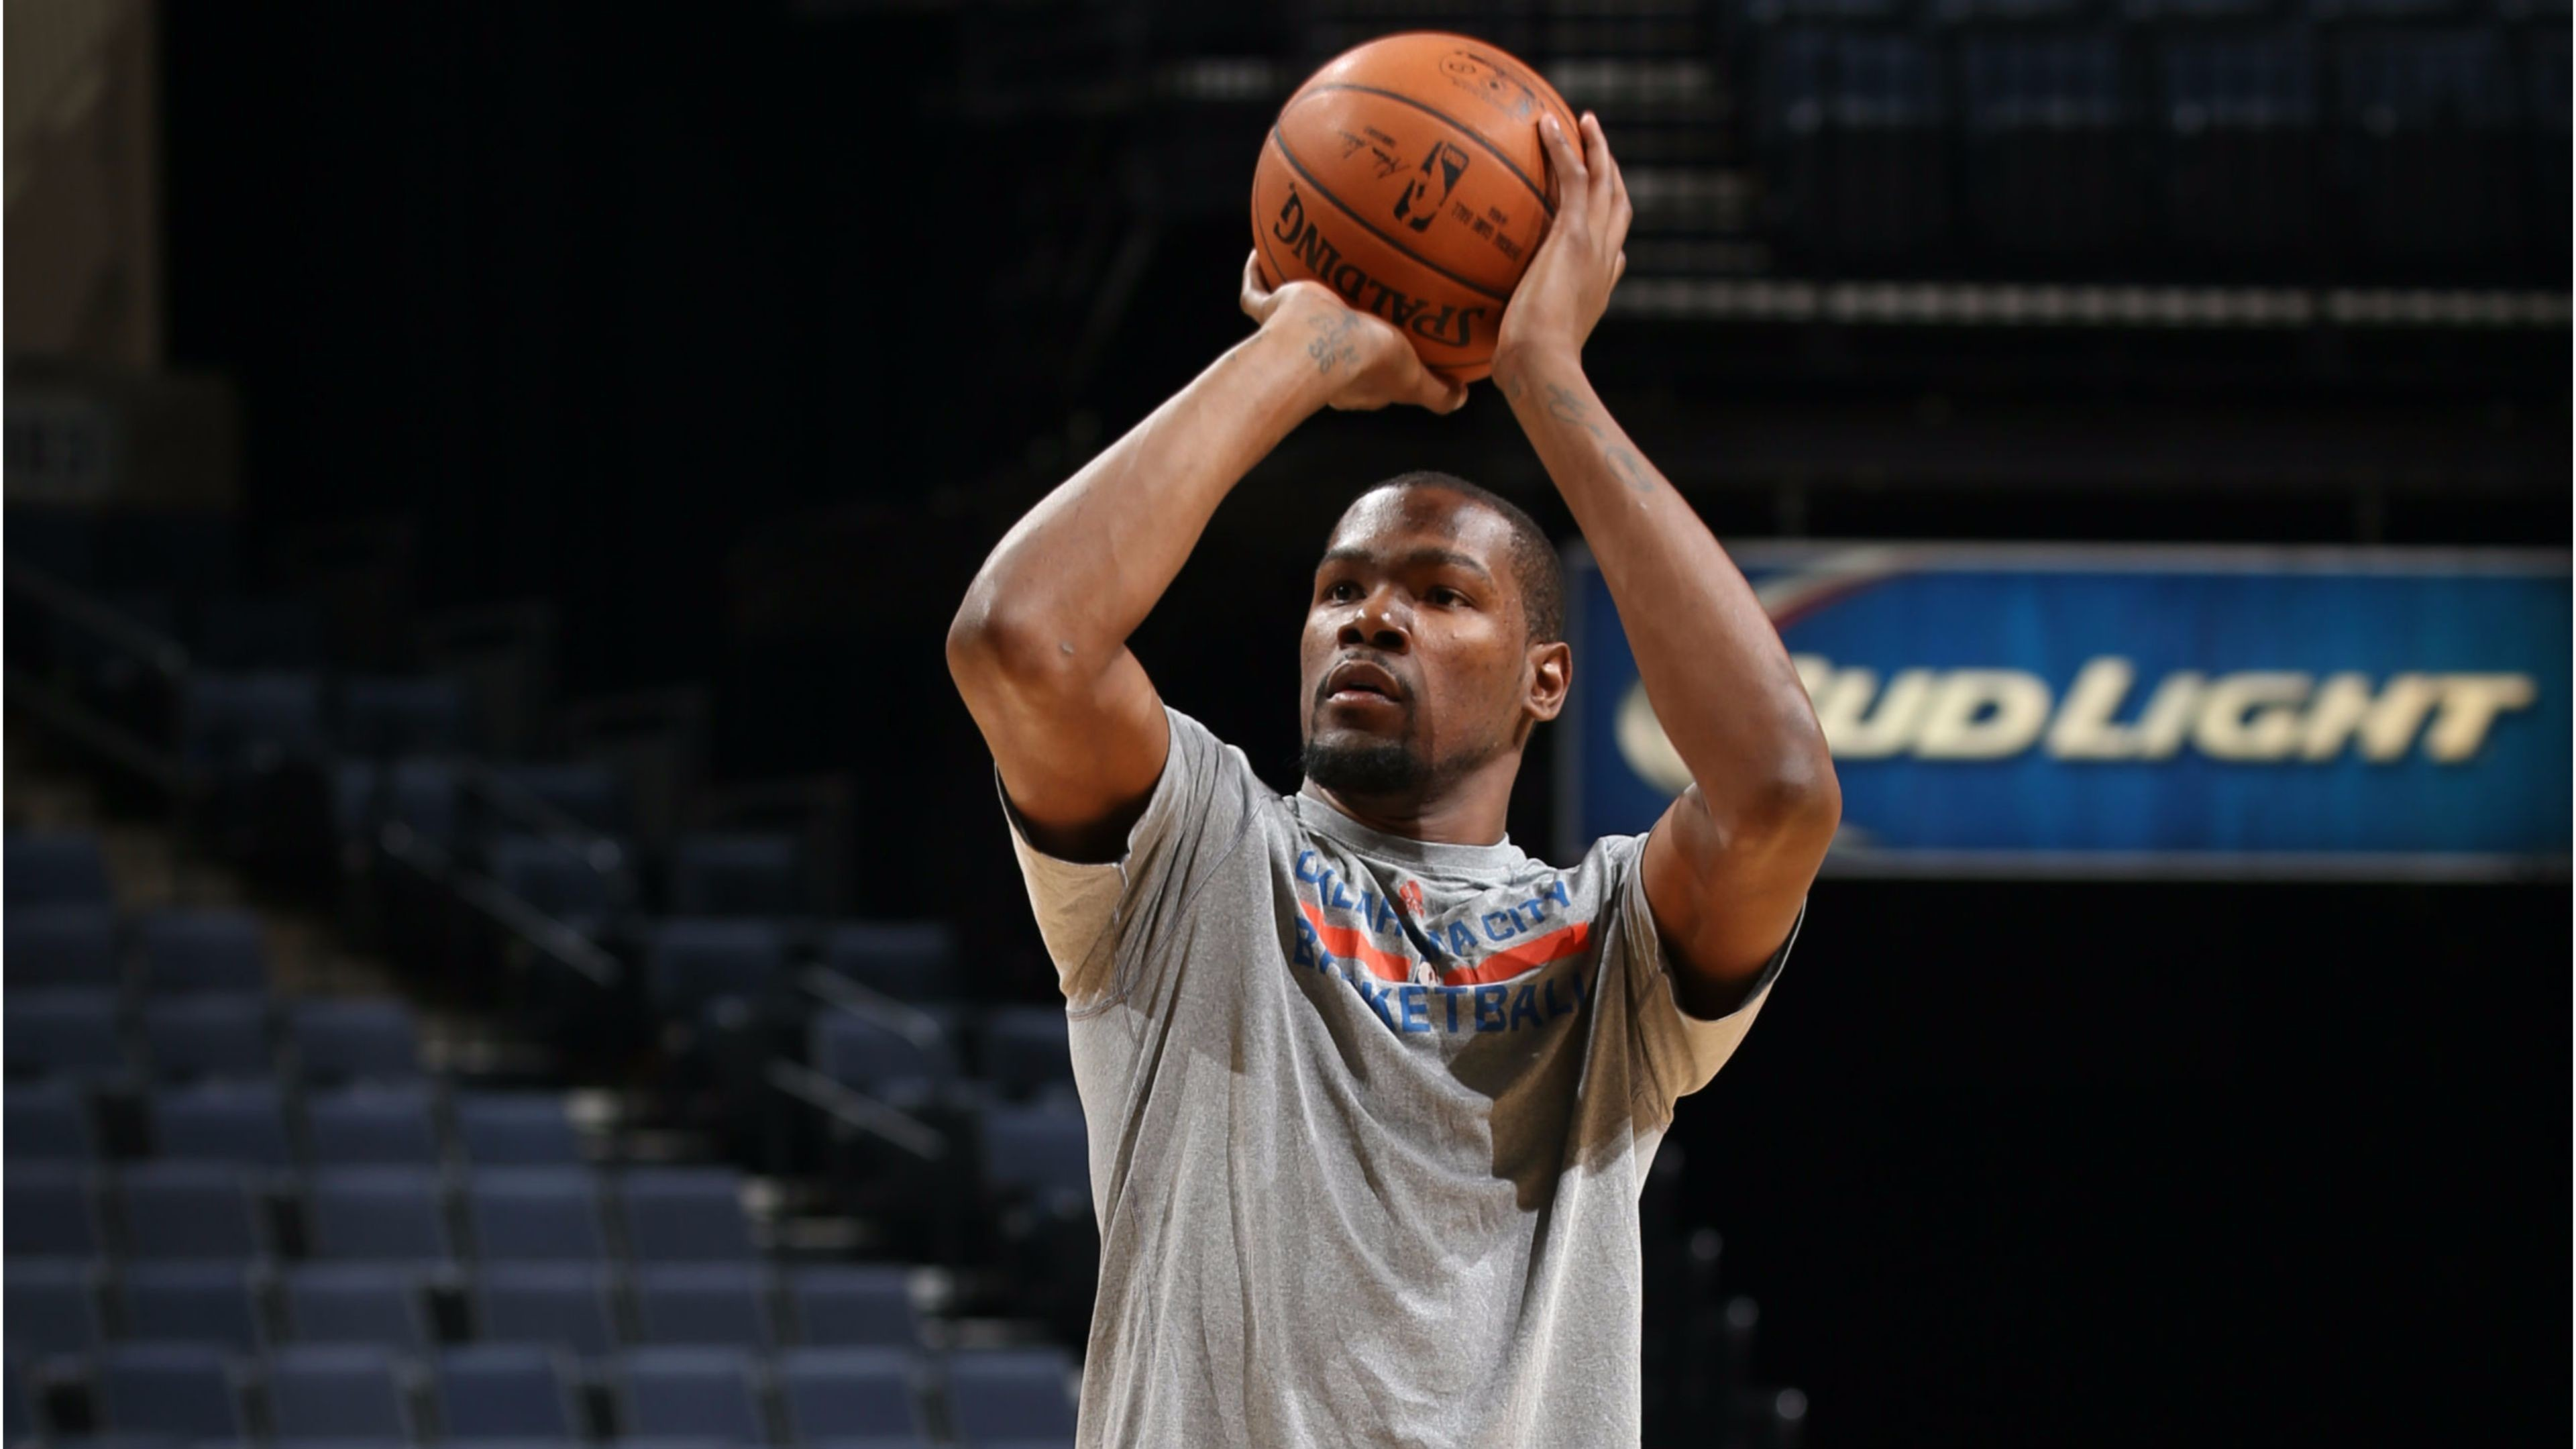 Simple Wallpaper Logo Kevin Durant - 846603-best-kevin-durant-dunk-wallpaper-2018-3840x2160-samsung  Pictures_143393.jpg